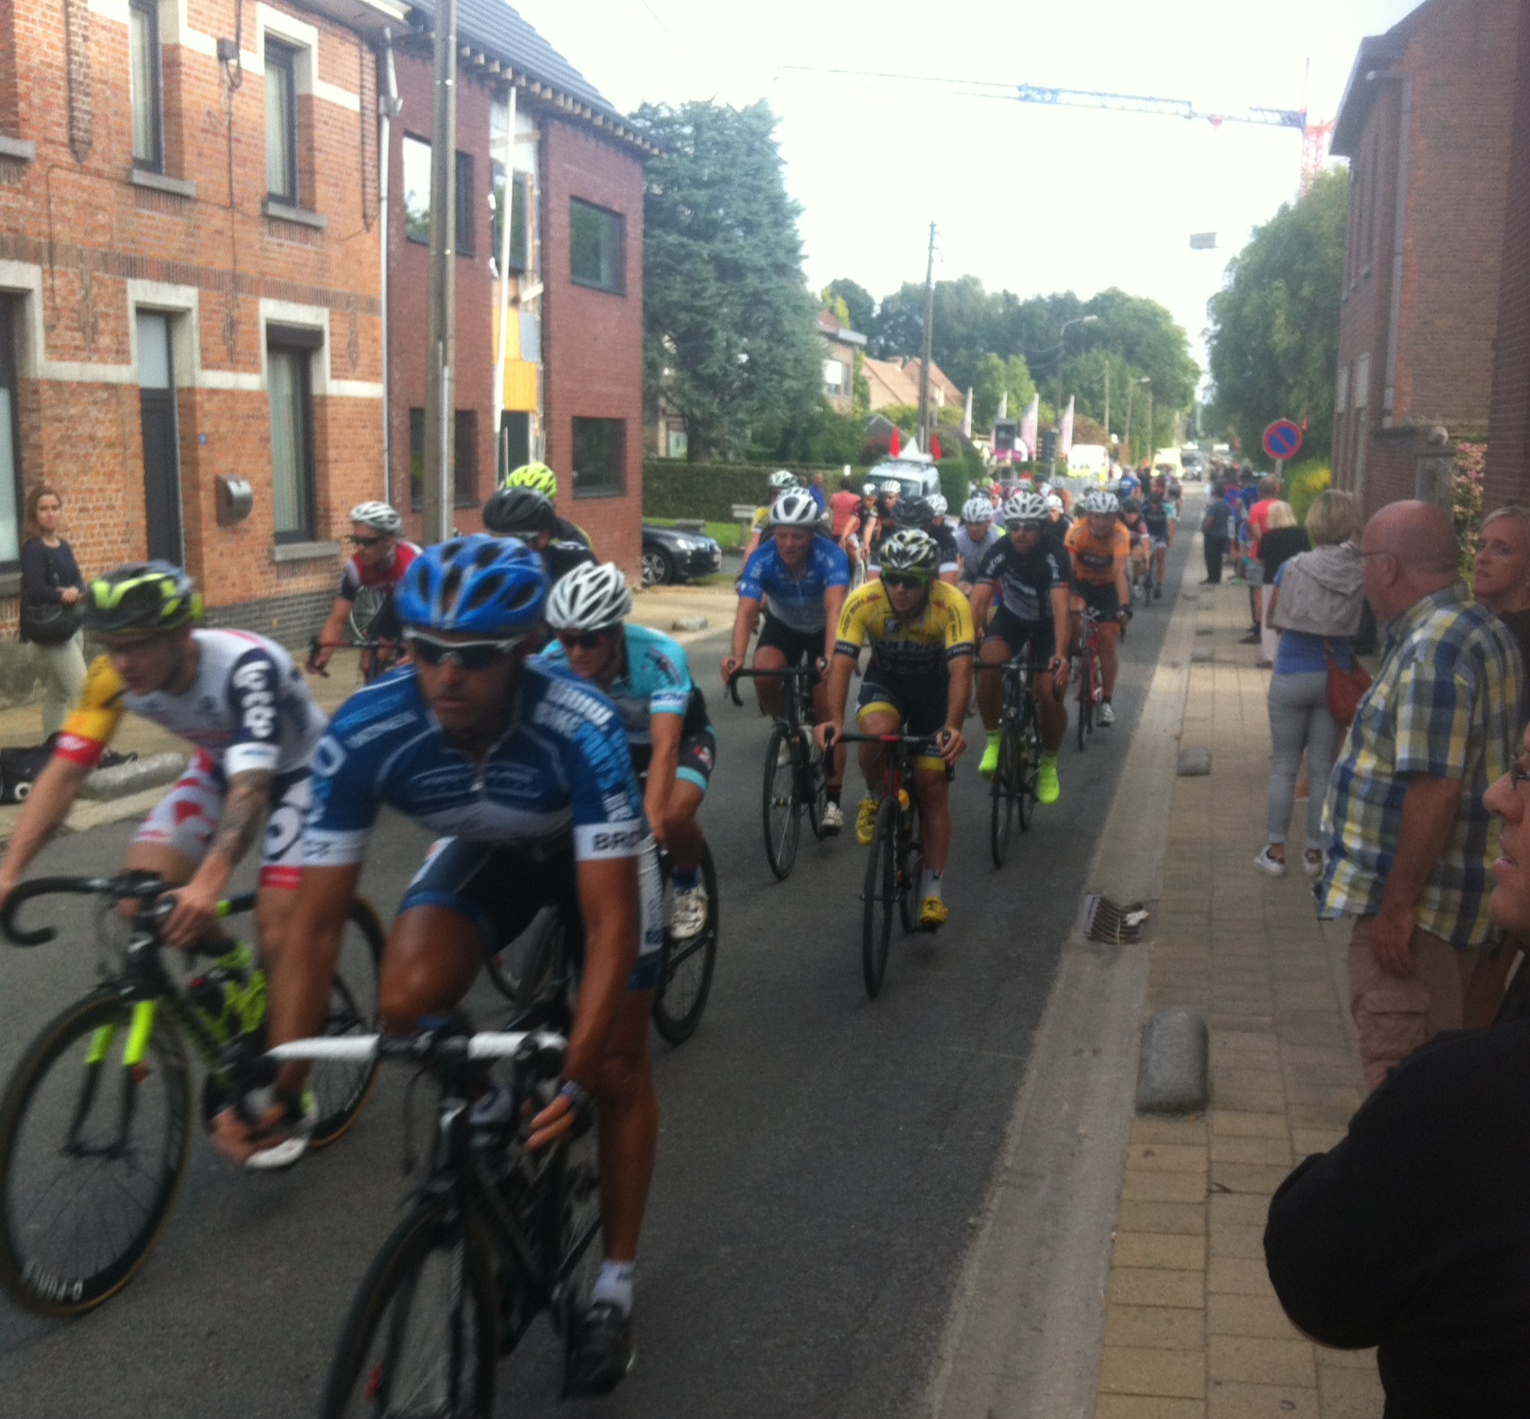 The Temse Kermis race in the VWB League. Koen Verhulst in the yellow fluro overshoes. Conor has his final race at the Temse Kermis UCI race next Tuesday and a good opportunity today to review the circuit.